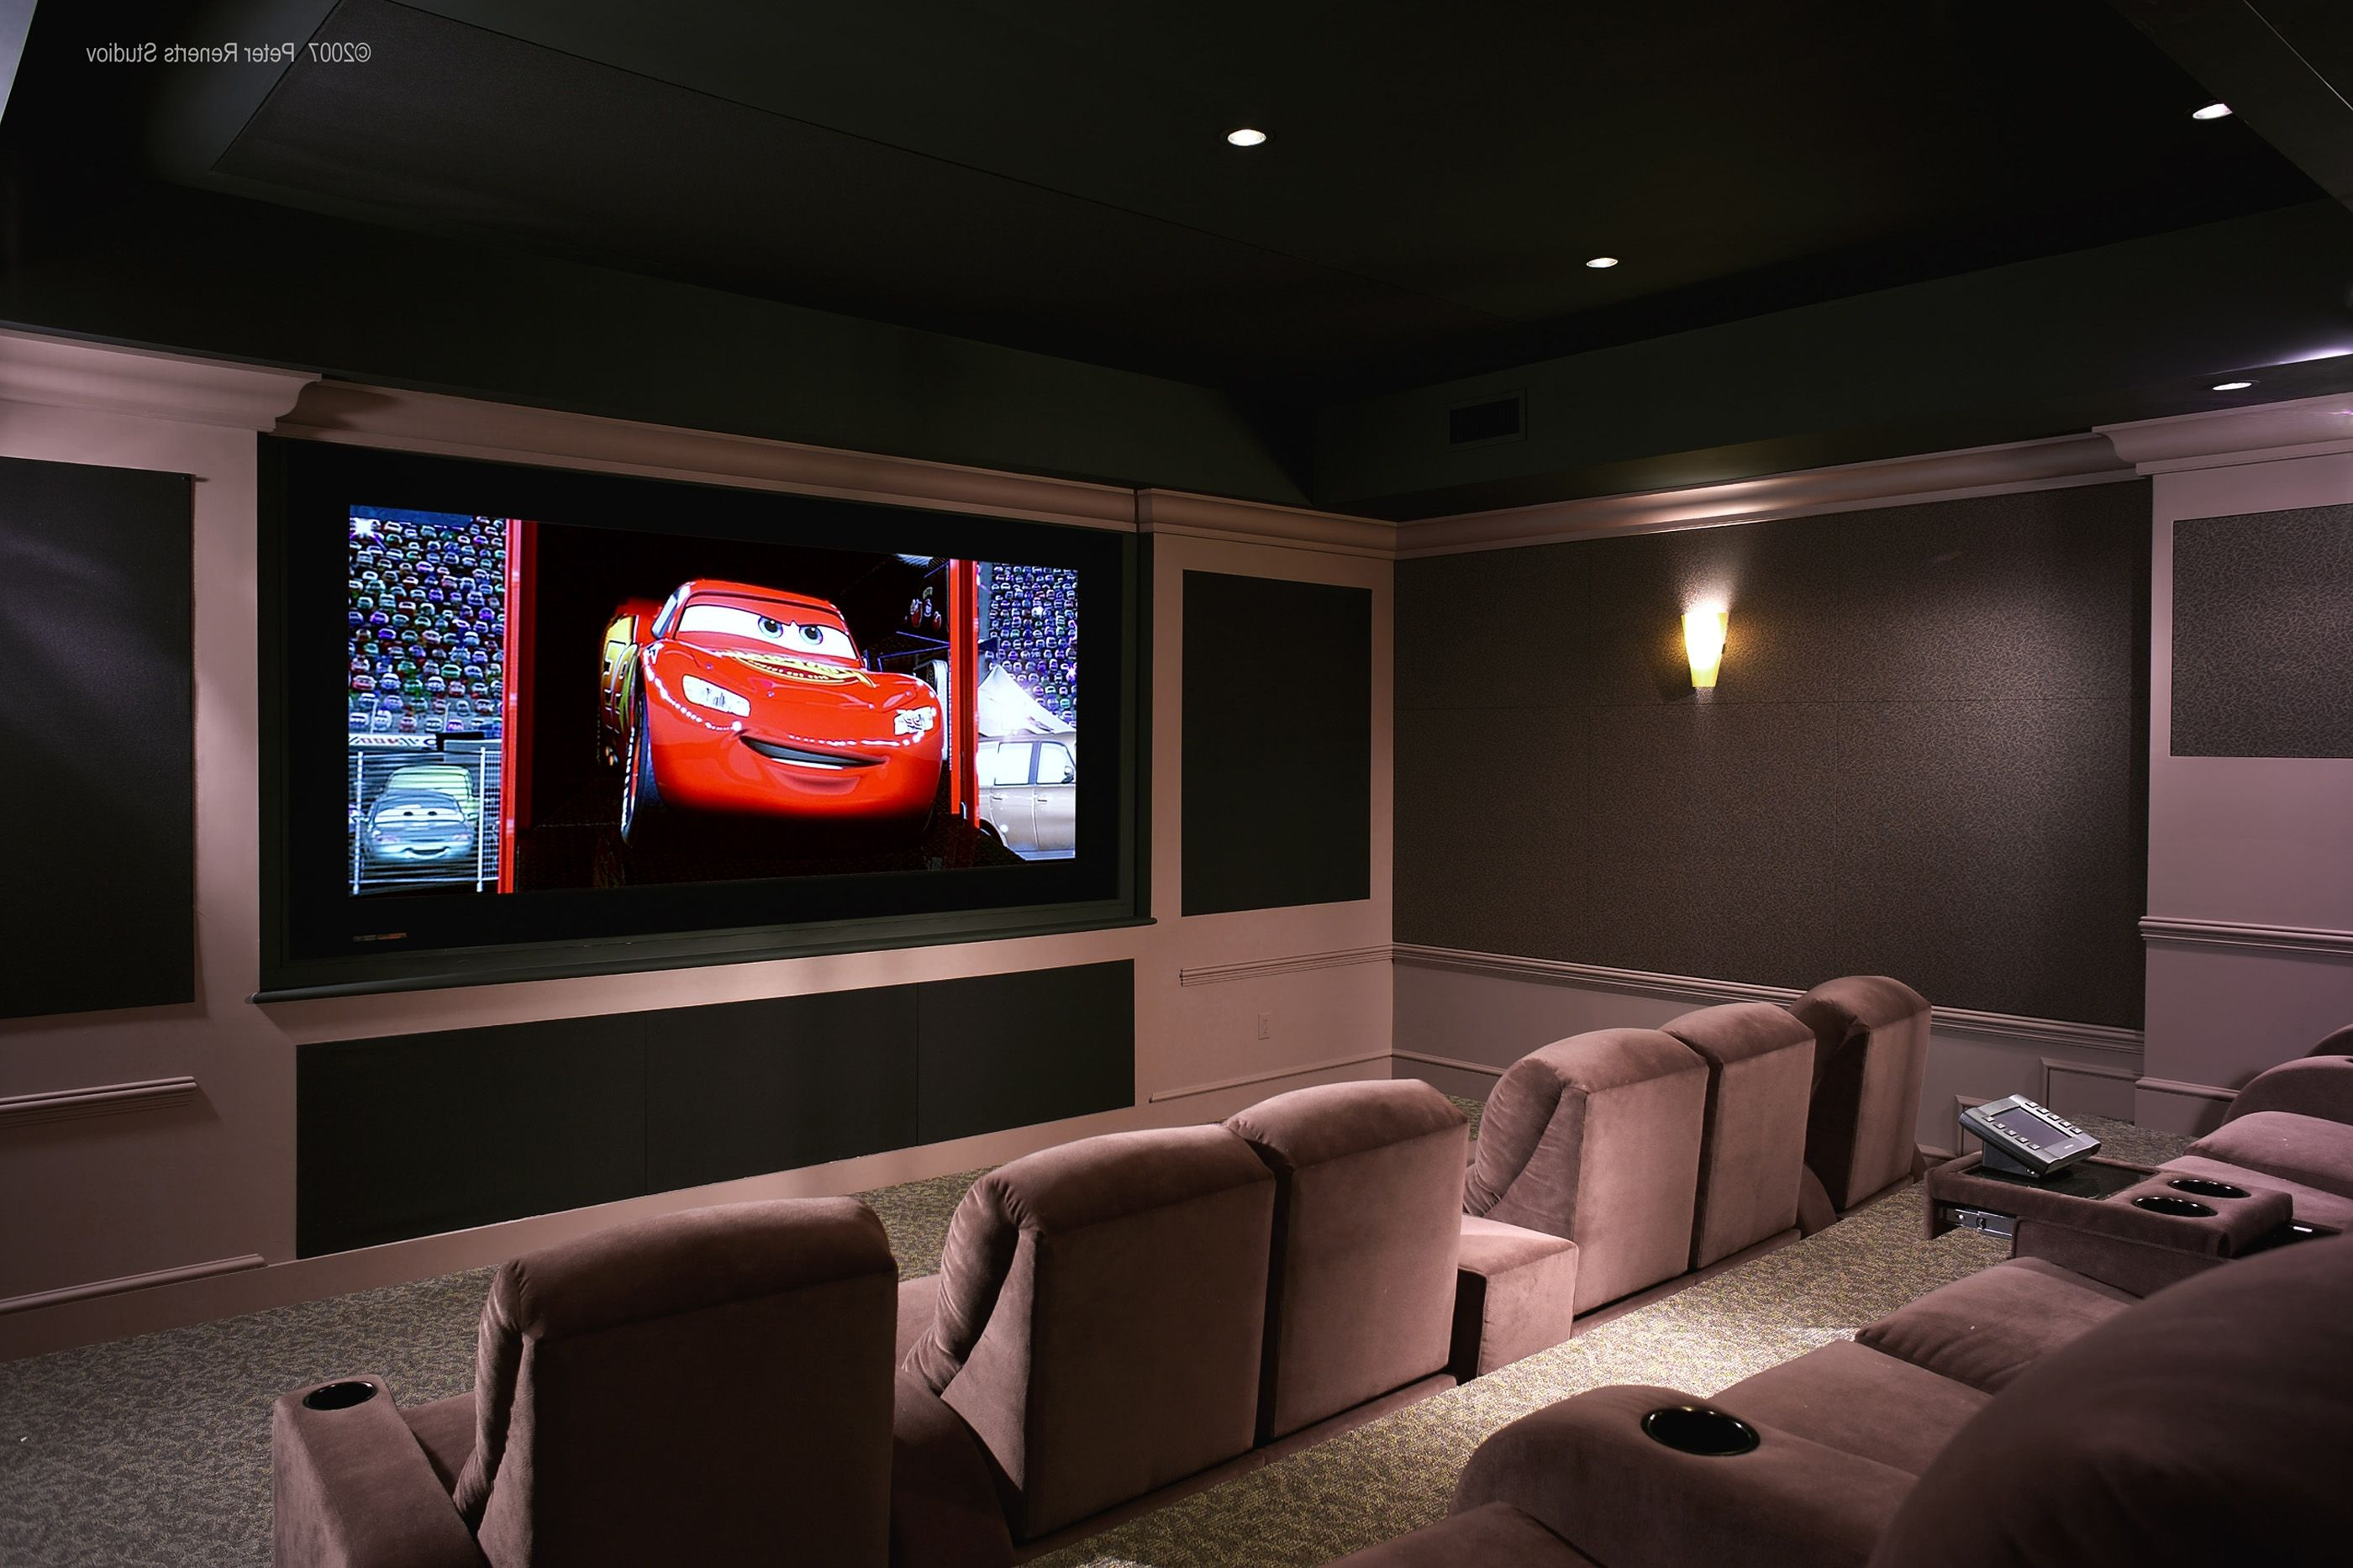 home theater room design modern home design small home cinema room backgrounds - Home Theater Room Design